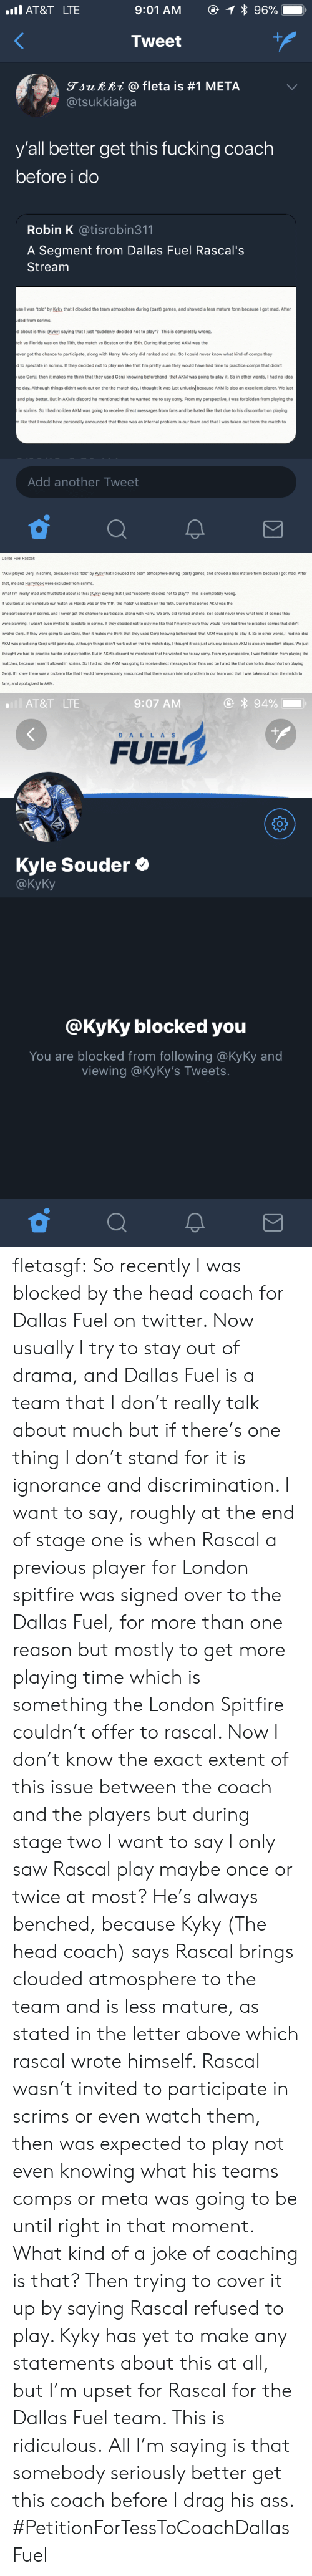 """This Is Ridiculous: AT&T LTE  Tweet  gjunni @ fleta is #1 META  @tsukkiaiga  y'all better get this fucking coach  before i do  Robin K @tisrobin311  A Segment from Dallas Fuel Rascal's  Stream  se I was 'told by Kyky that I clouded the team atmosphere during (past) games, and showed a less mature form because I got mad. After  ded from scrims.  d about is this: (Kyky) saying that I just """"suddenly decided not to play""""? This is completely wrong.  ch vs Florida was on the 11th, the match vs Boston on the 15th. During that period AKM was the  ever got the chance to participate, along with Harry. We only did ranked and etc. So I could never know what kind of comps they  to spectate in scrims. If they decided not to play me like that I'm pretty sure they would have had time to practice comps that didn't  use Genji, then it makes me think that they used Genji knowing beforehand that AKM was going to play it. So in other words, I had no idea  e day. Although things didn't work out on the the match day, I thought it was just unlucky)because AKM is also an excellent player. We just  and play better. But in AKM's discord he mentioned that he wanted me to say sorry. From my perspective, I was forbidden from playing the  in scrims. So I had no idea AKM was going to receive direct messages from fans and be hated like that due to his discomfort on playing  like that I would have personally announced that there was an internal problem in our team and that I was taken out from the match to  Add another Tweet   Dallas Fuel Rascal  """"AKM played Genj in scrims, because I was 'told' by Kyky that I clouded the team atmosphere during (past) games, and showed a less mature form because I got mad. After  that, me and Harryhook were excluded from scrims.  What I'm 'really mad and frustrated about is this: (Kyky) saying that I just """"suddenly decided not to play""""? This is completely wrong  If you look at our schedule our match vs Florida was on the 11th, the match vs Boston on the 15th. During """